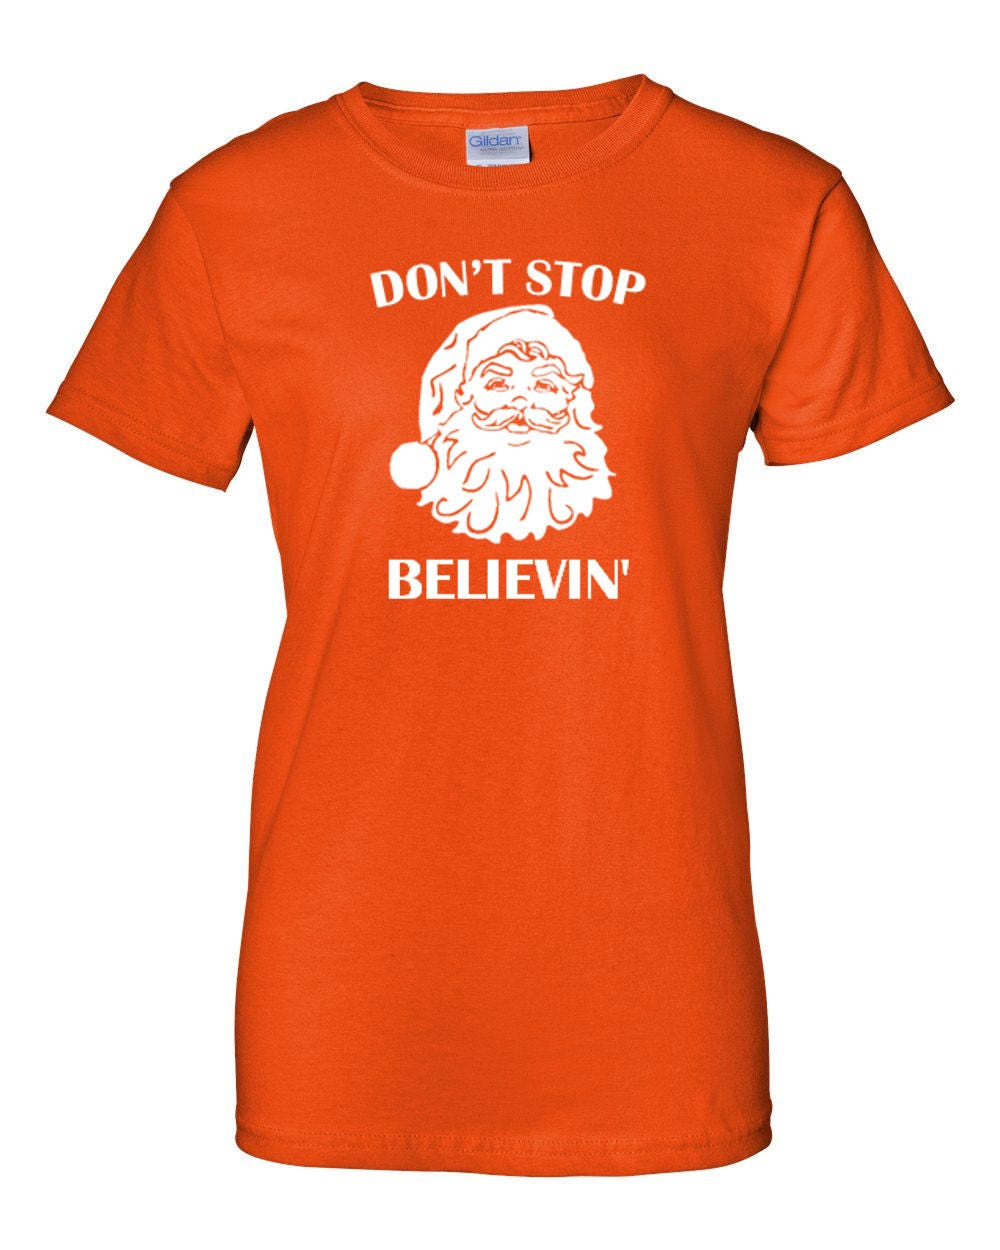 95556f46 Ladies Don't Stop Believin' T Shirt Believing Christmas Xmas T-shirt Tee  Santa Claus